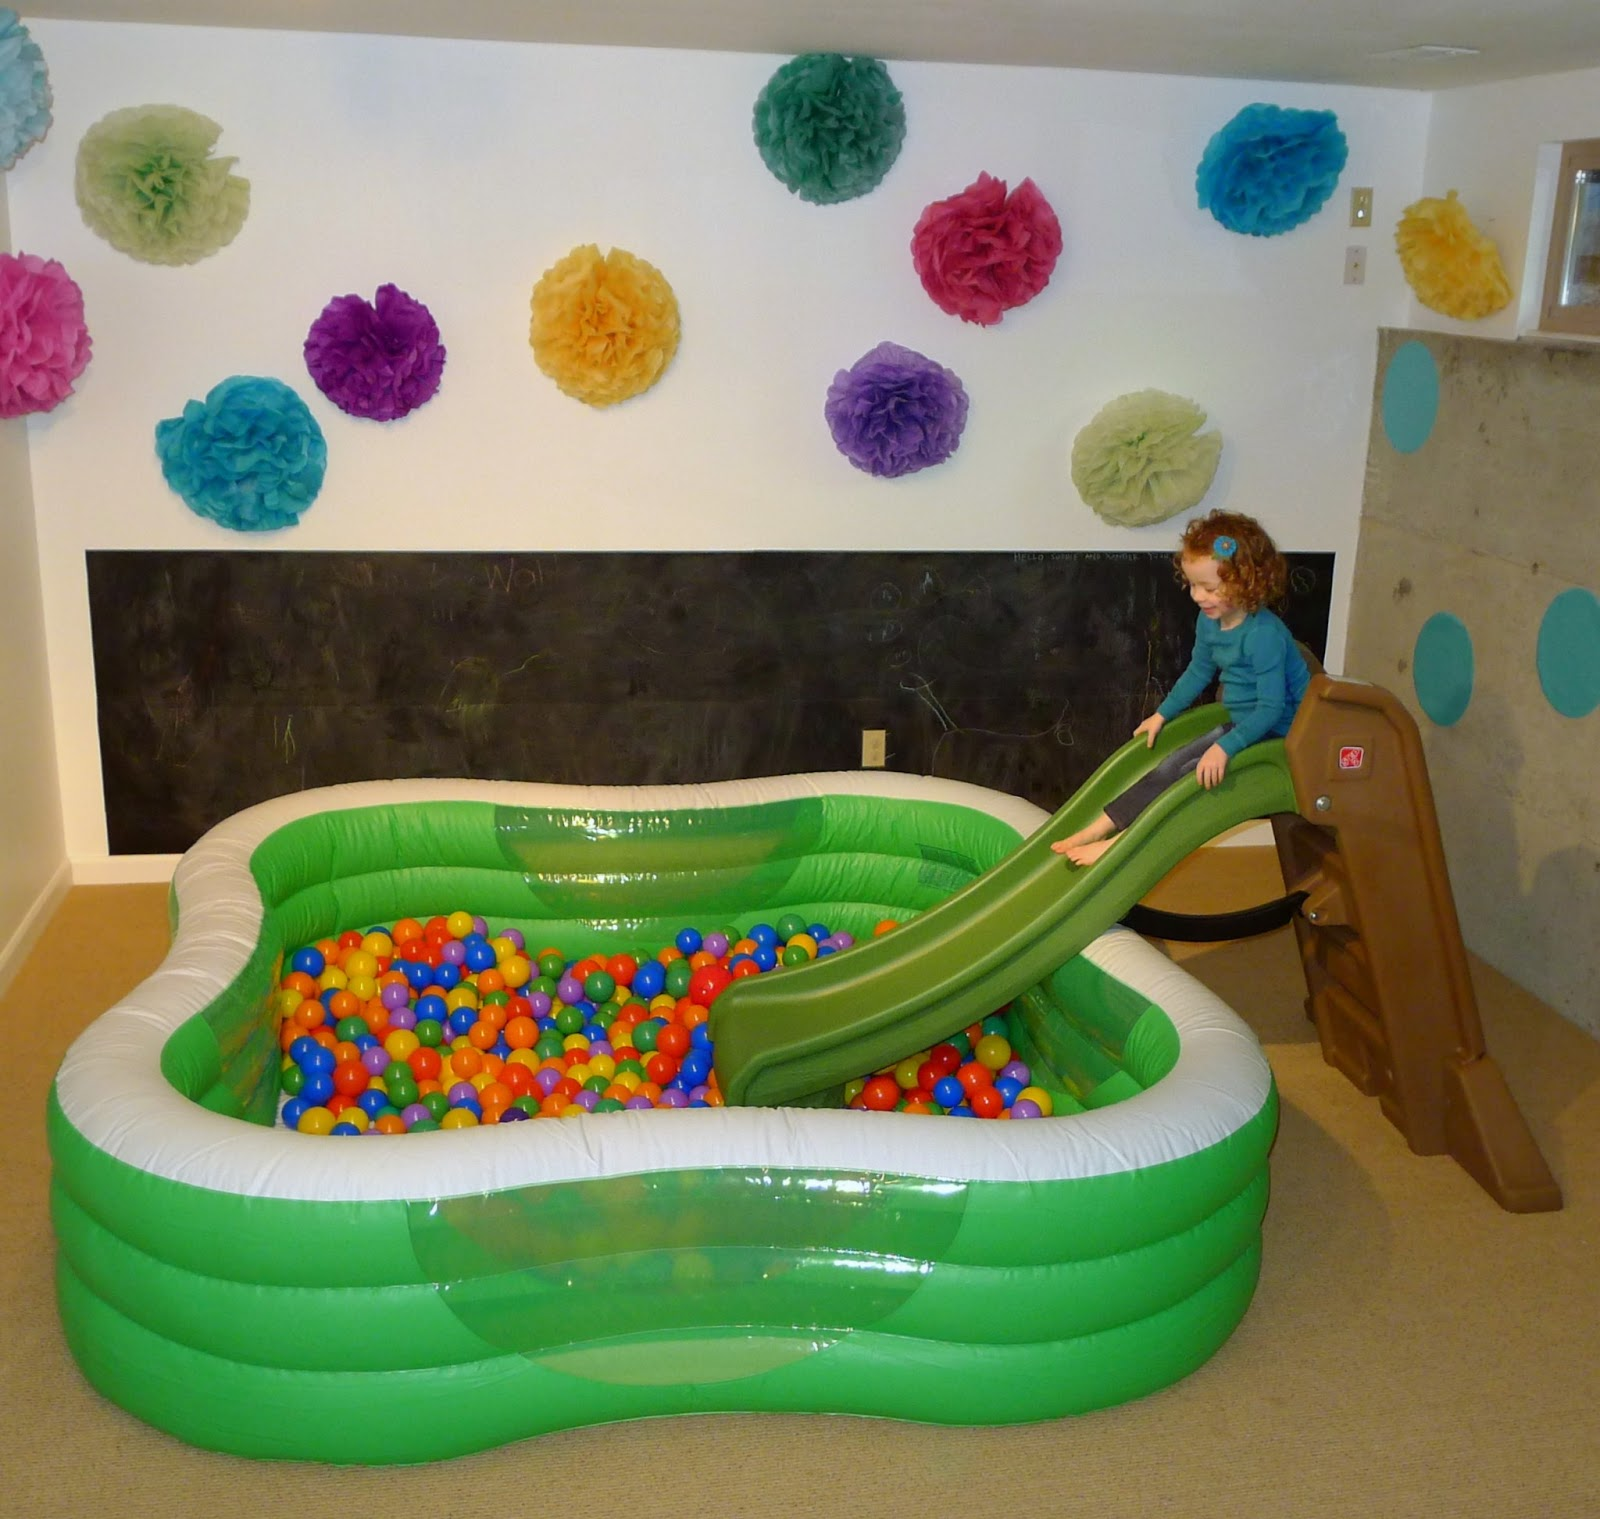 Cool Things To Put In A Basement: Playroom Design: Our Art Room